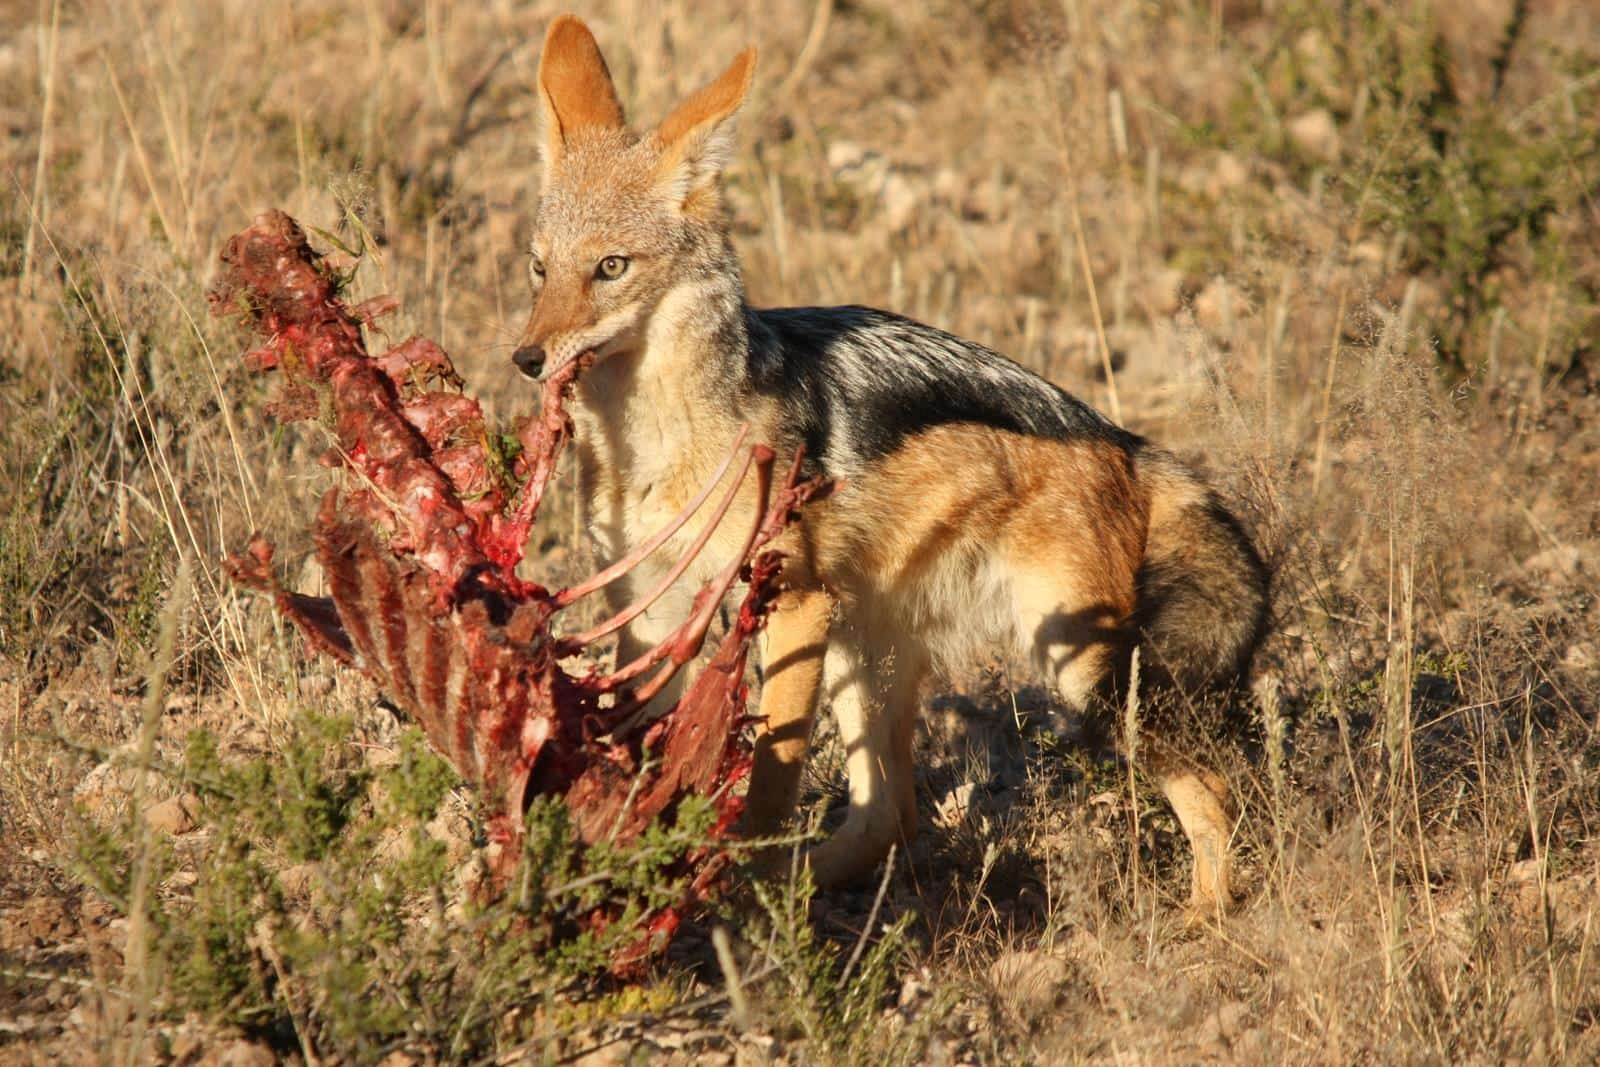 Be careful of animals like jackal that seem tame.